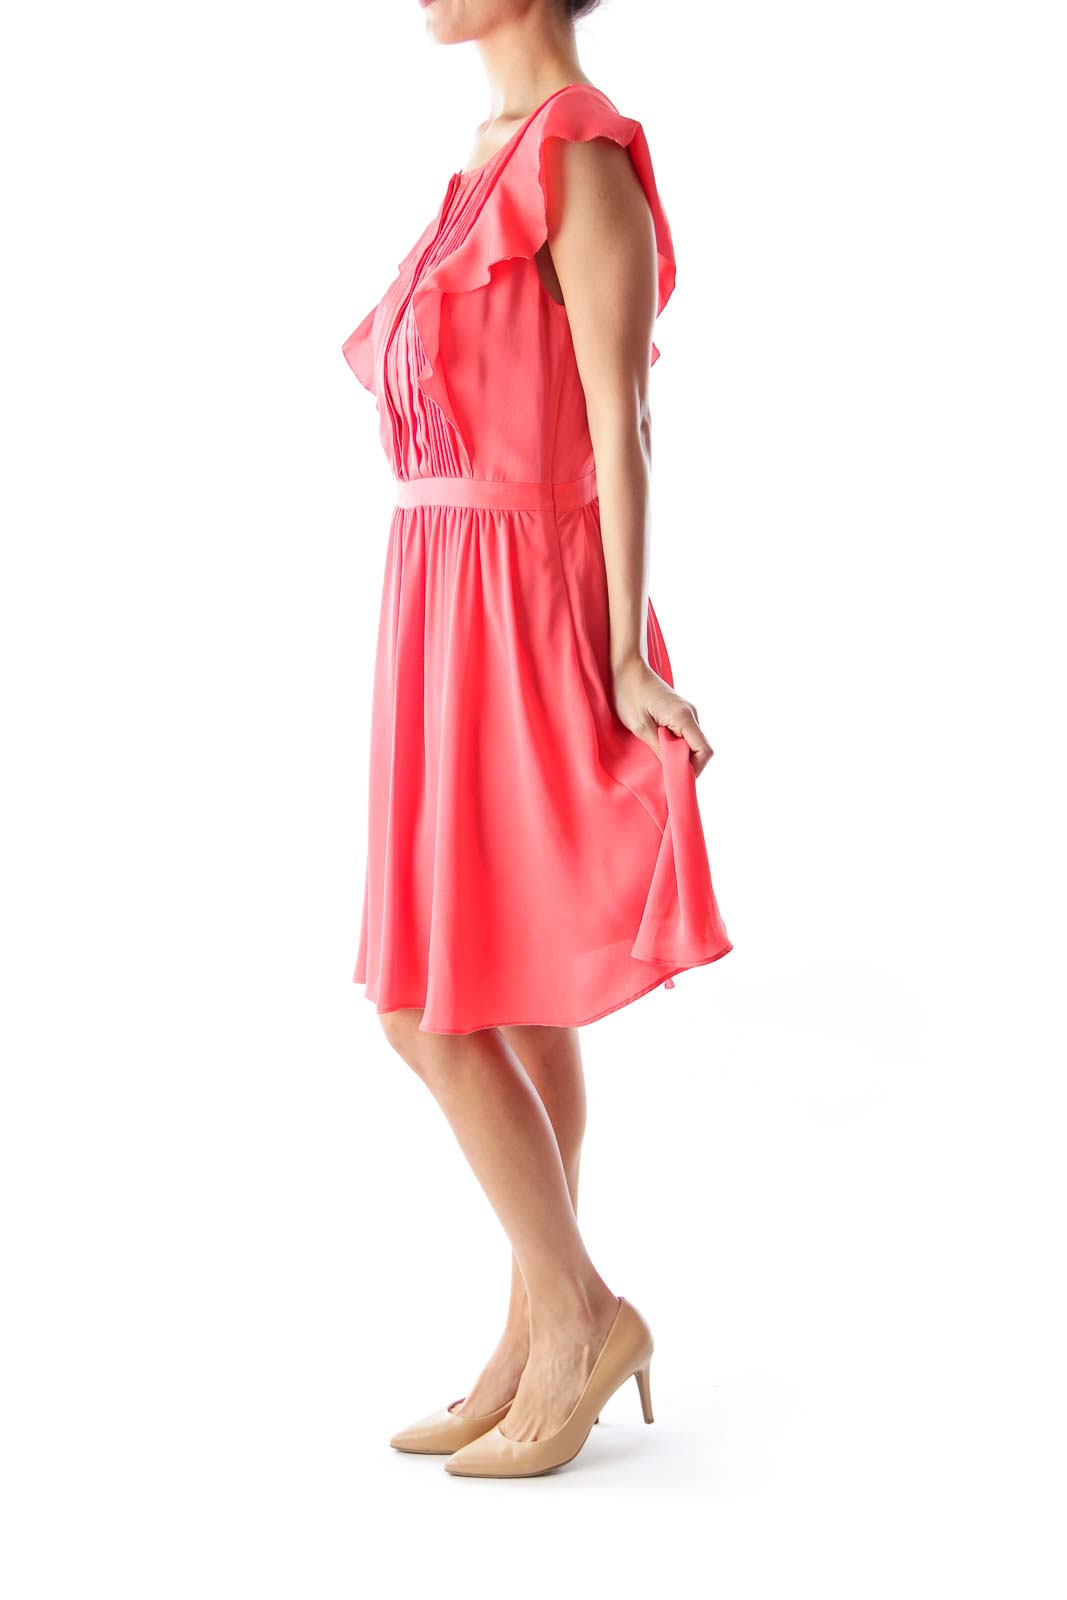 Peach Ruffle Dress